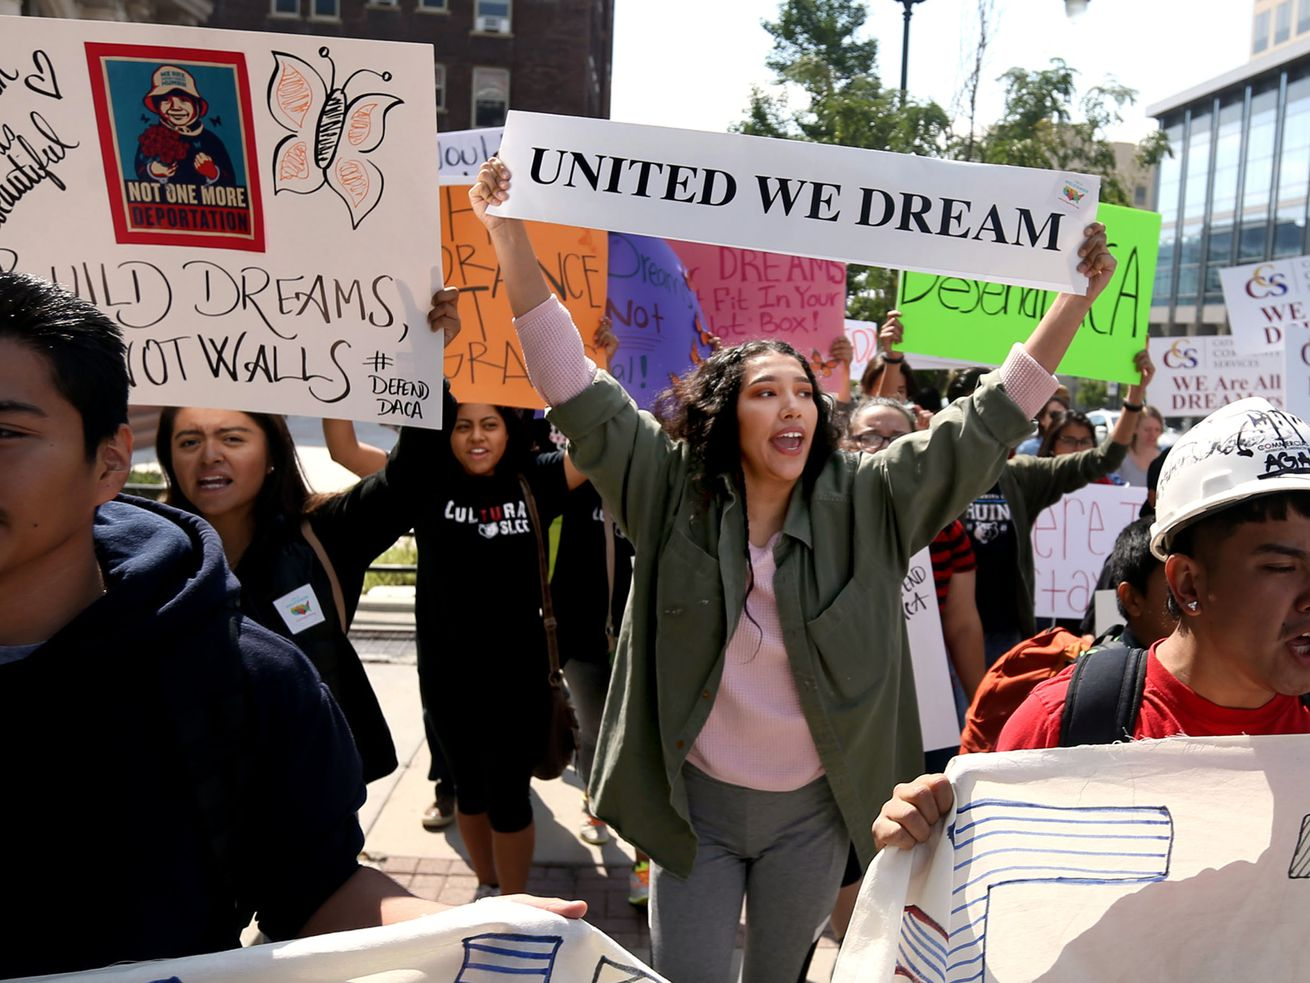 """DACA (Deferred Action for Childhood Arrivals) supporters, including Xochitl Cornejo, center, march to the Capitol during the """"We Are All DREAMers"""" rally in Salt Lake City on Sept. 16, 2017."""